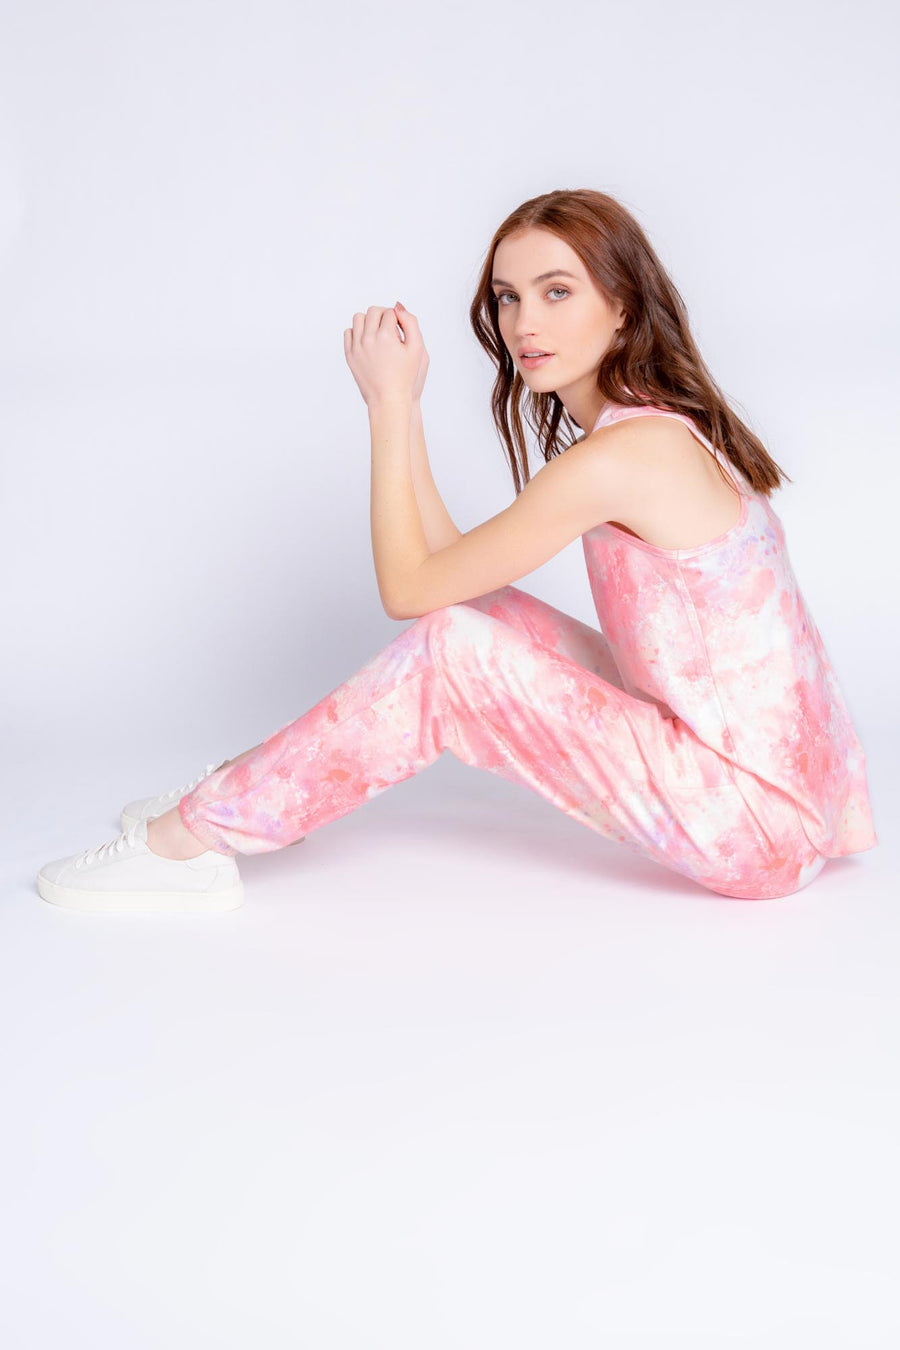 MELTING CRAYONS TIE DYE PANT - CORAL